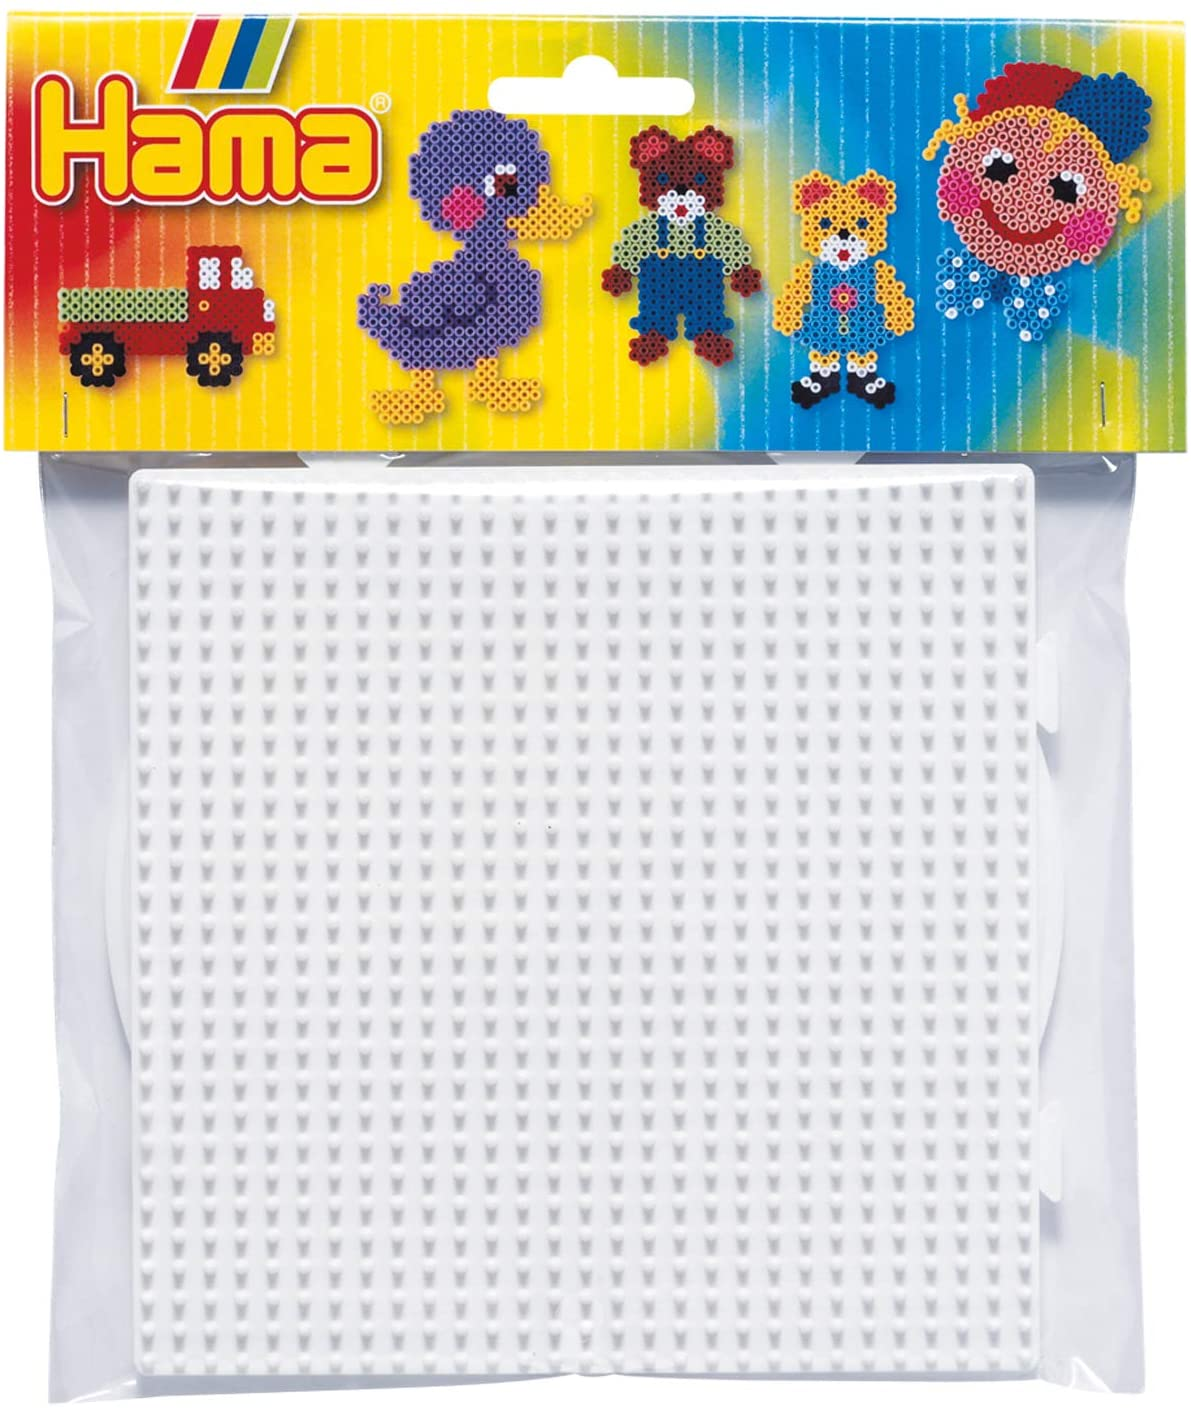 Hama Large Round and Square Pegboard Set